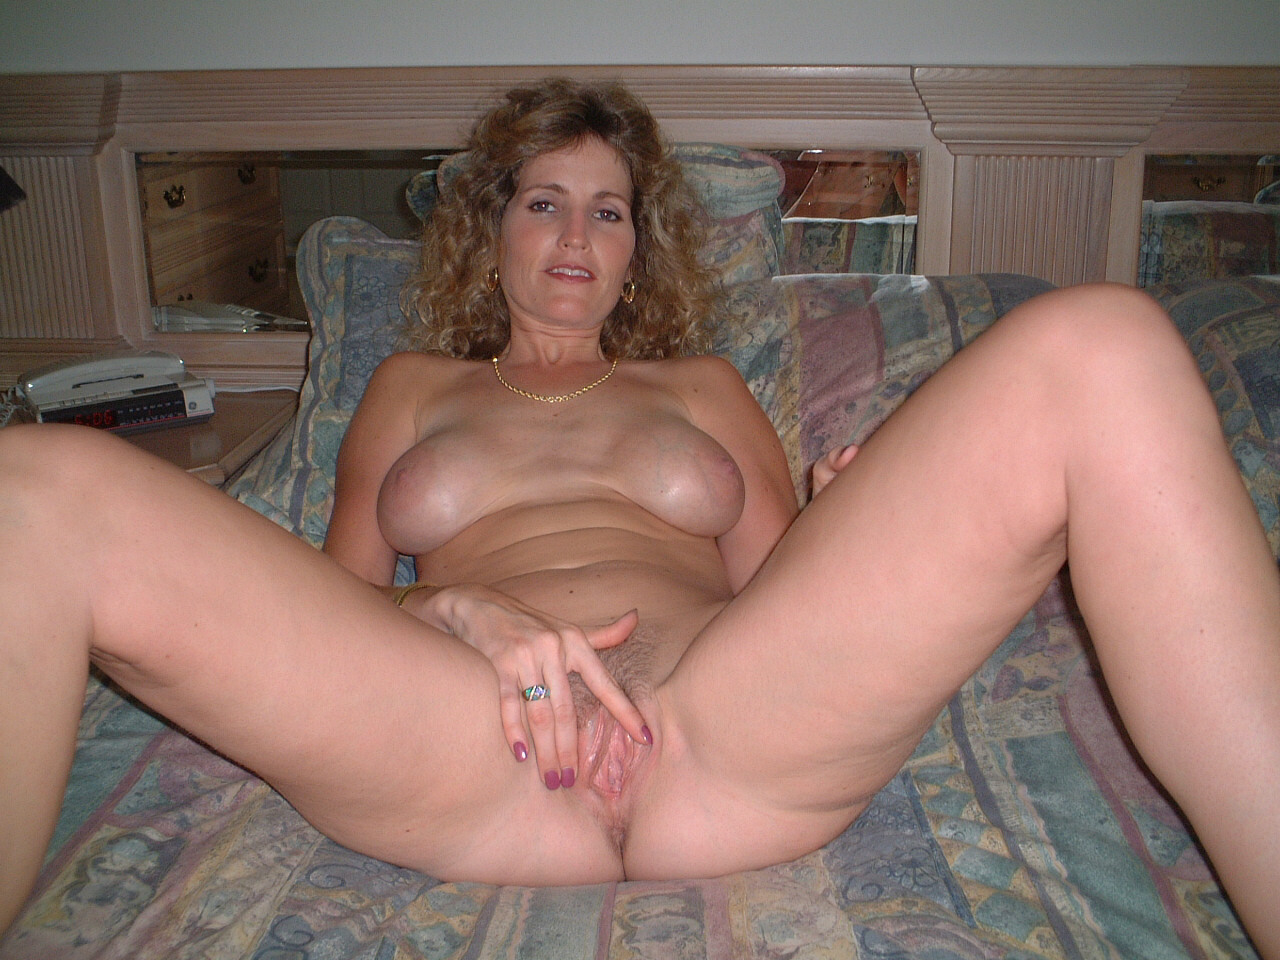 Ex wife stolen naked pictures